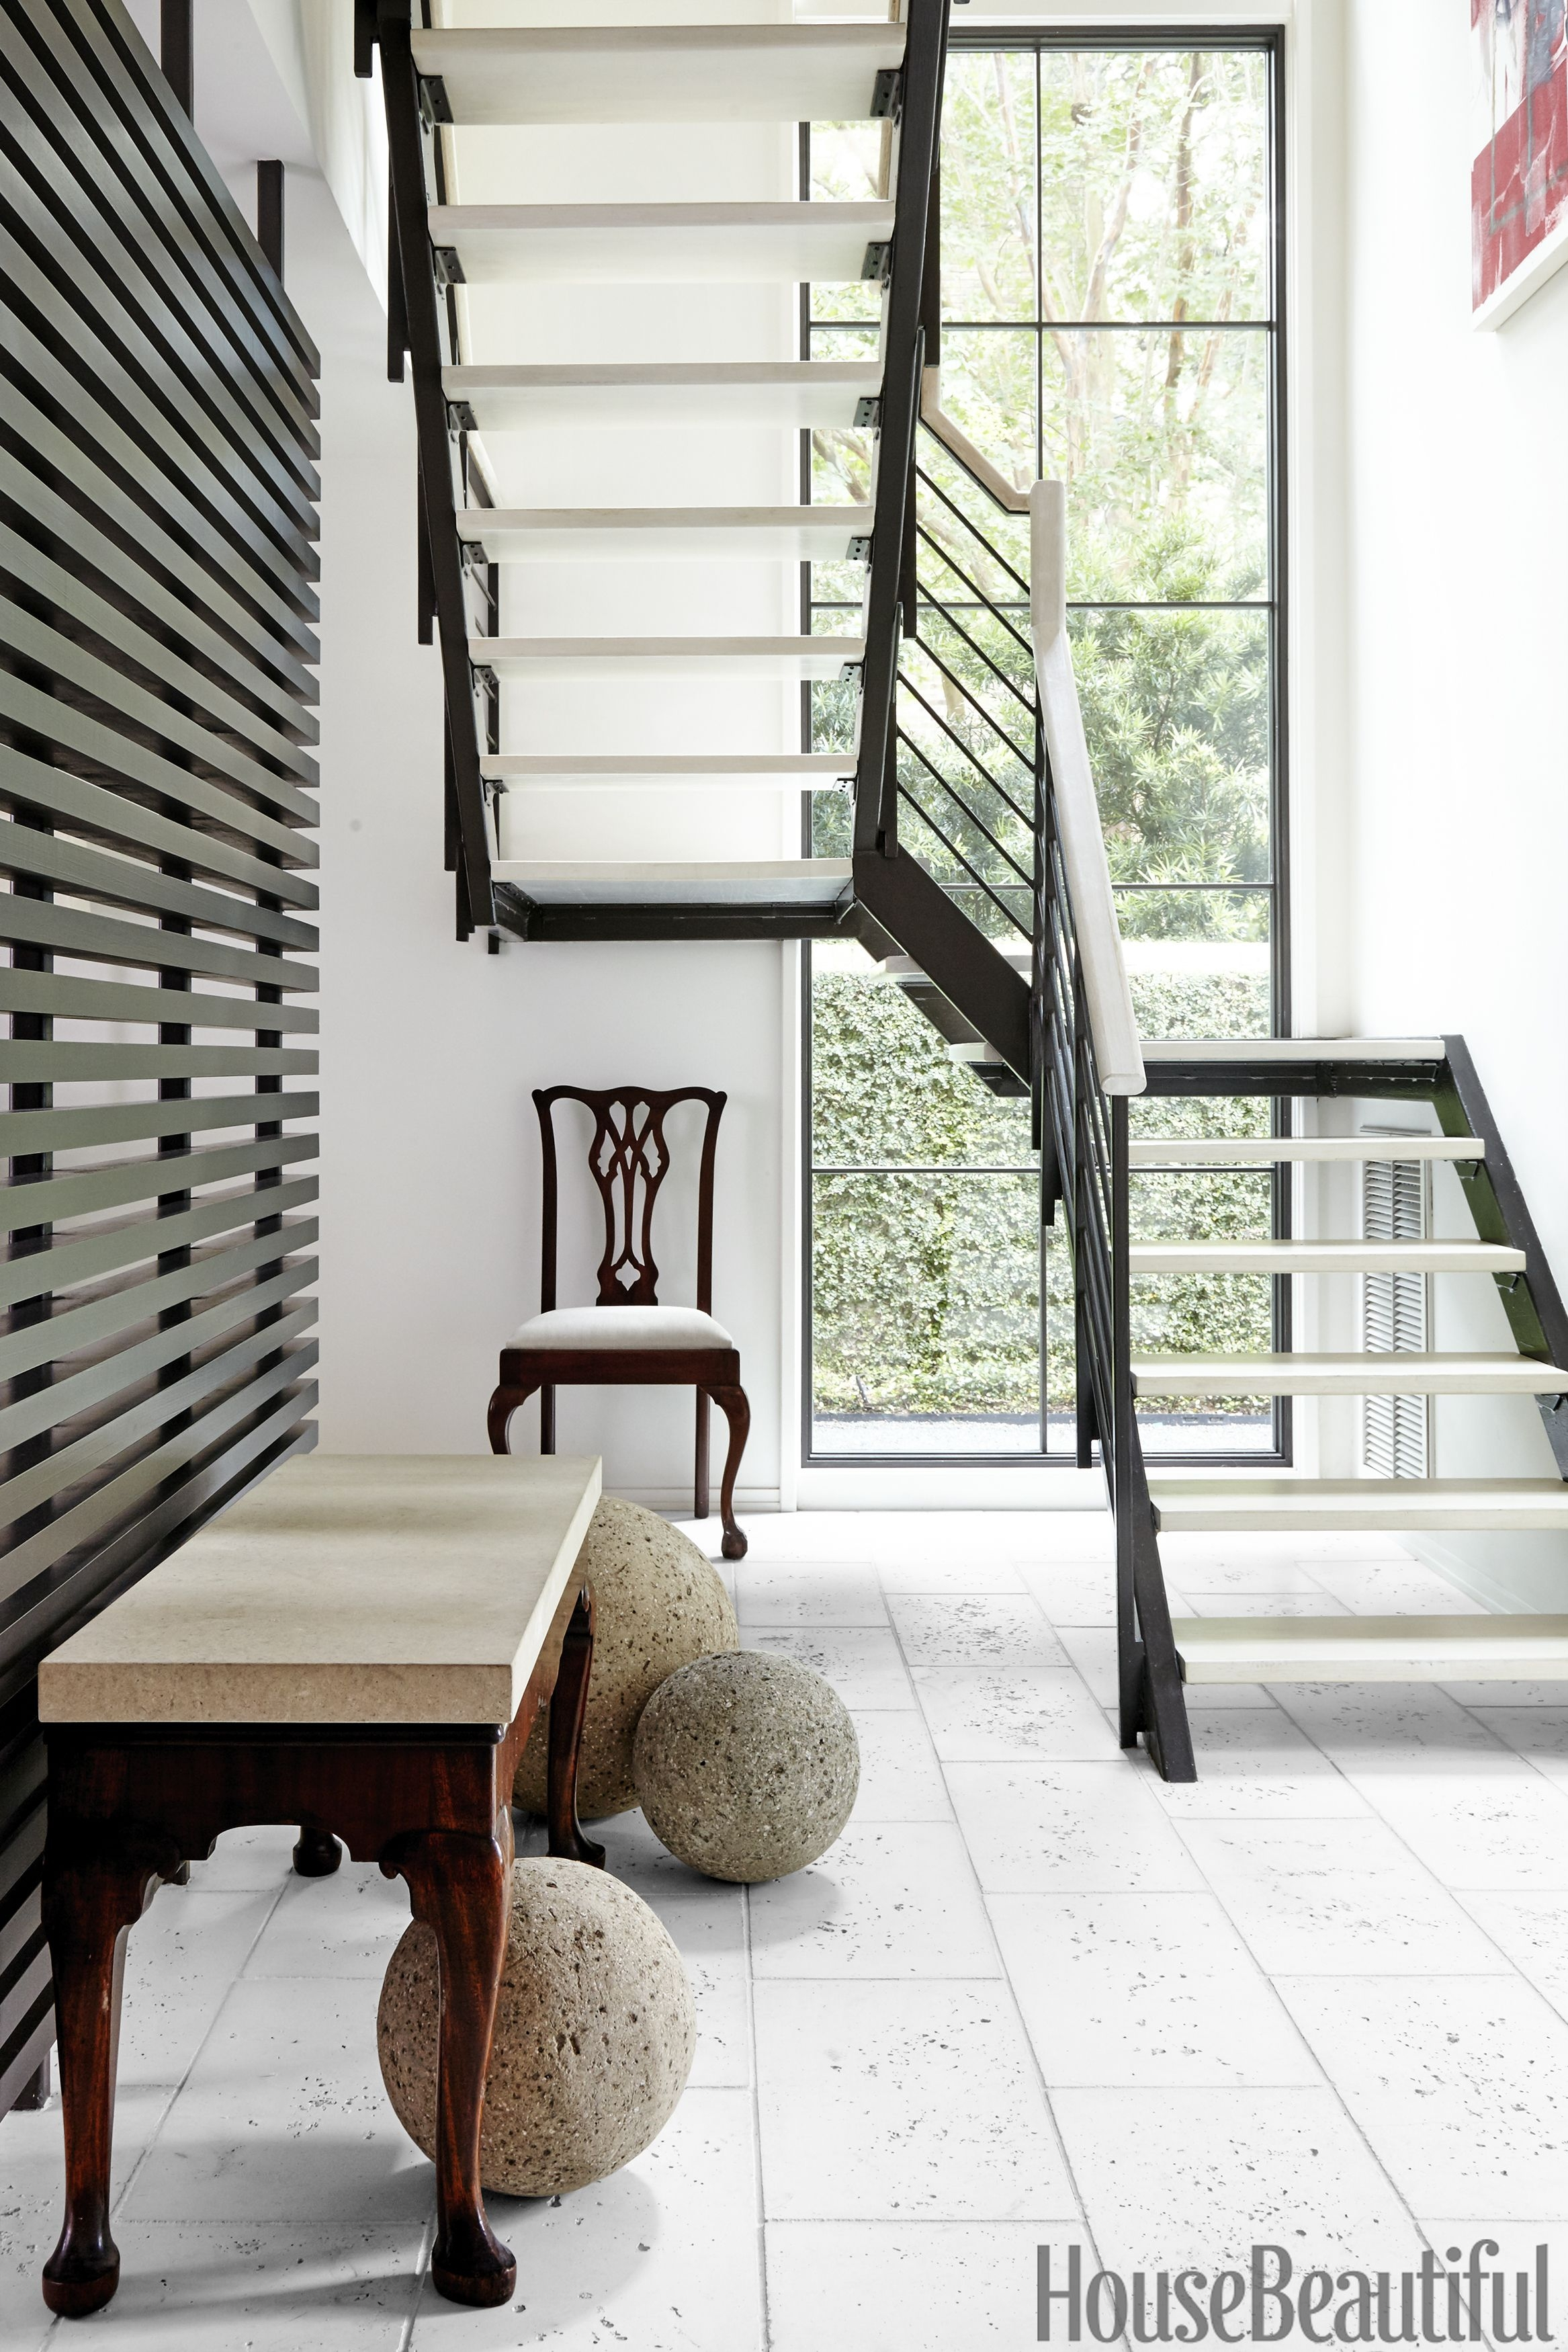 25 Unique Stair Designs Beautiful Stair Ideas For Your House | Simple Staircase Designs For Homes | Kitchen | Interior | Tiny | Simple 2Nd Floor House | Space Saving